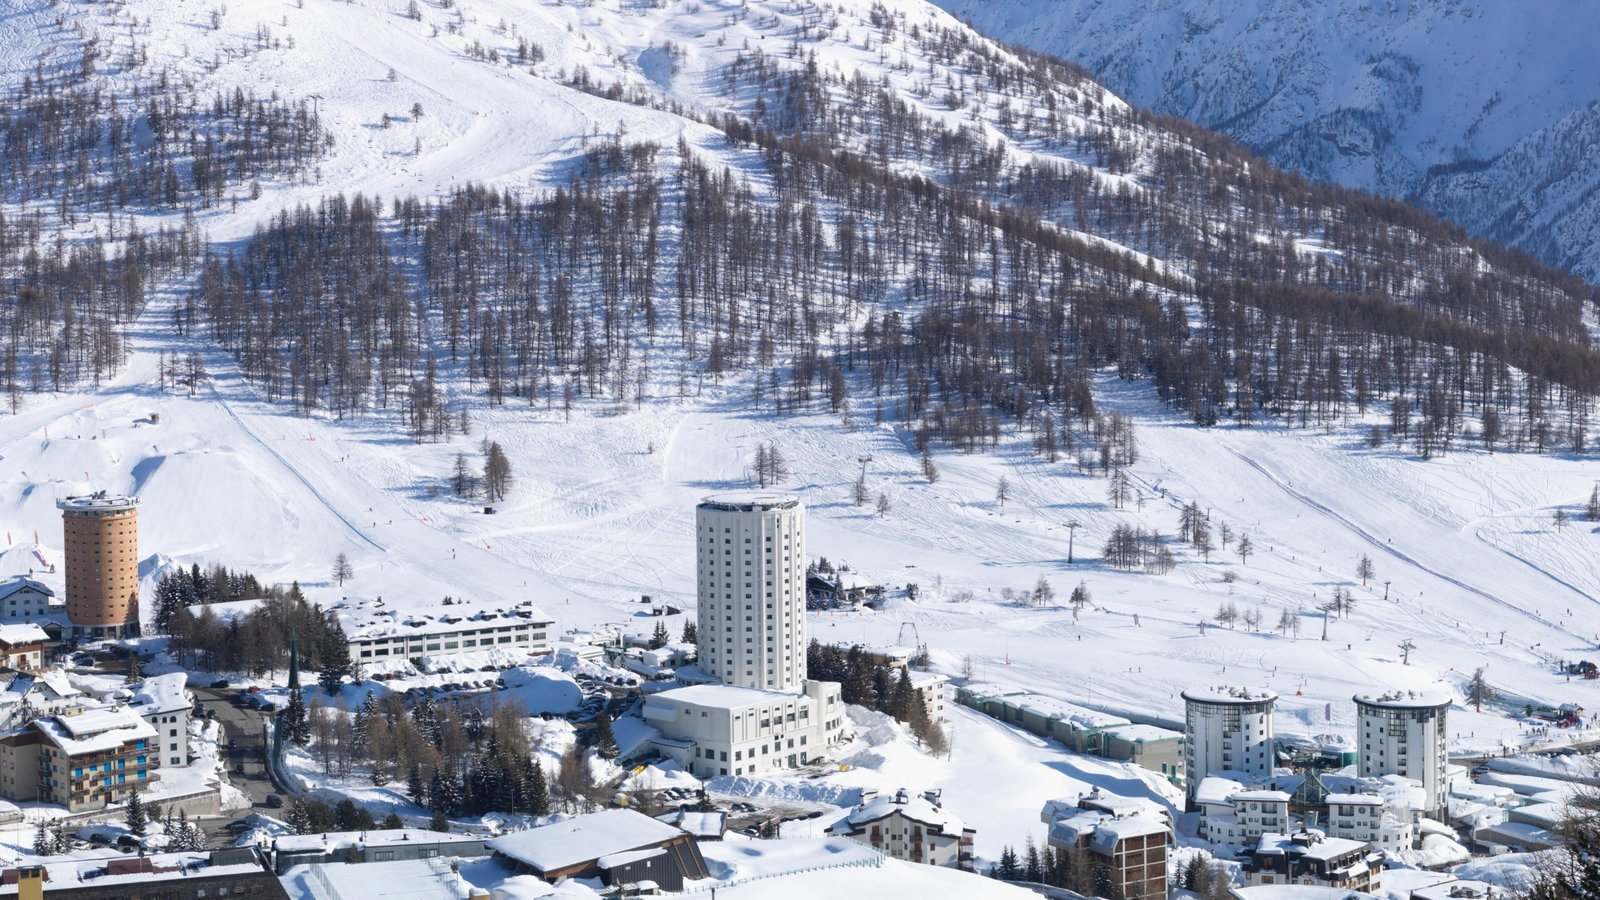 Sestriere featuring landscape views, snow and mountains